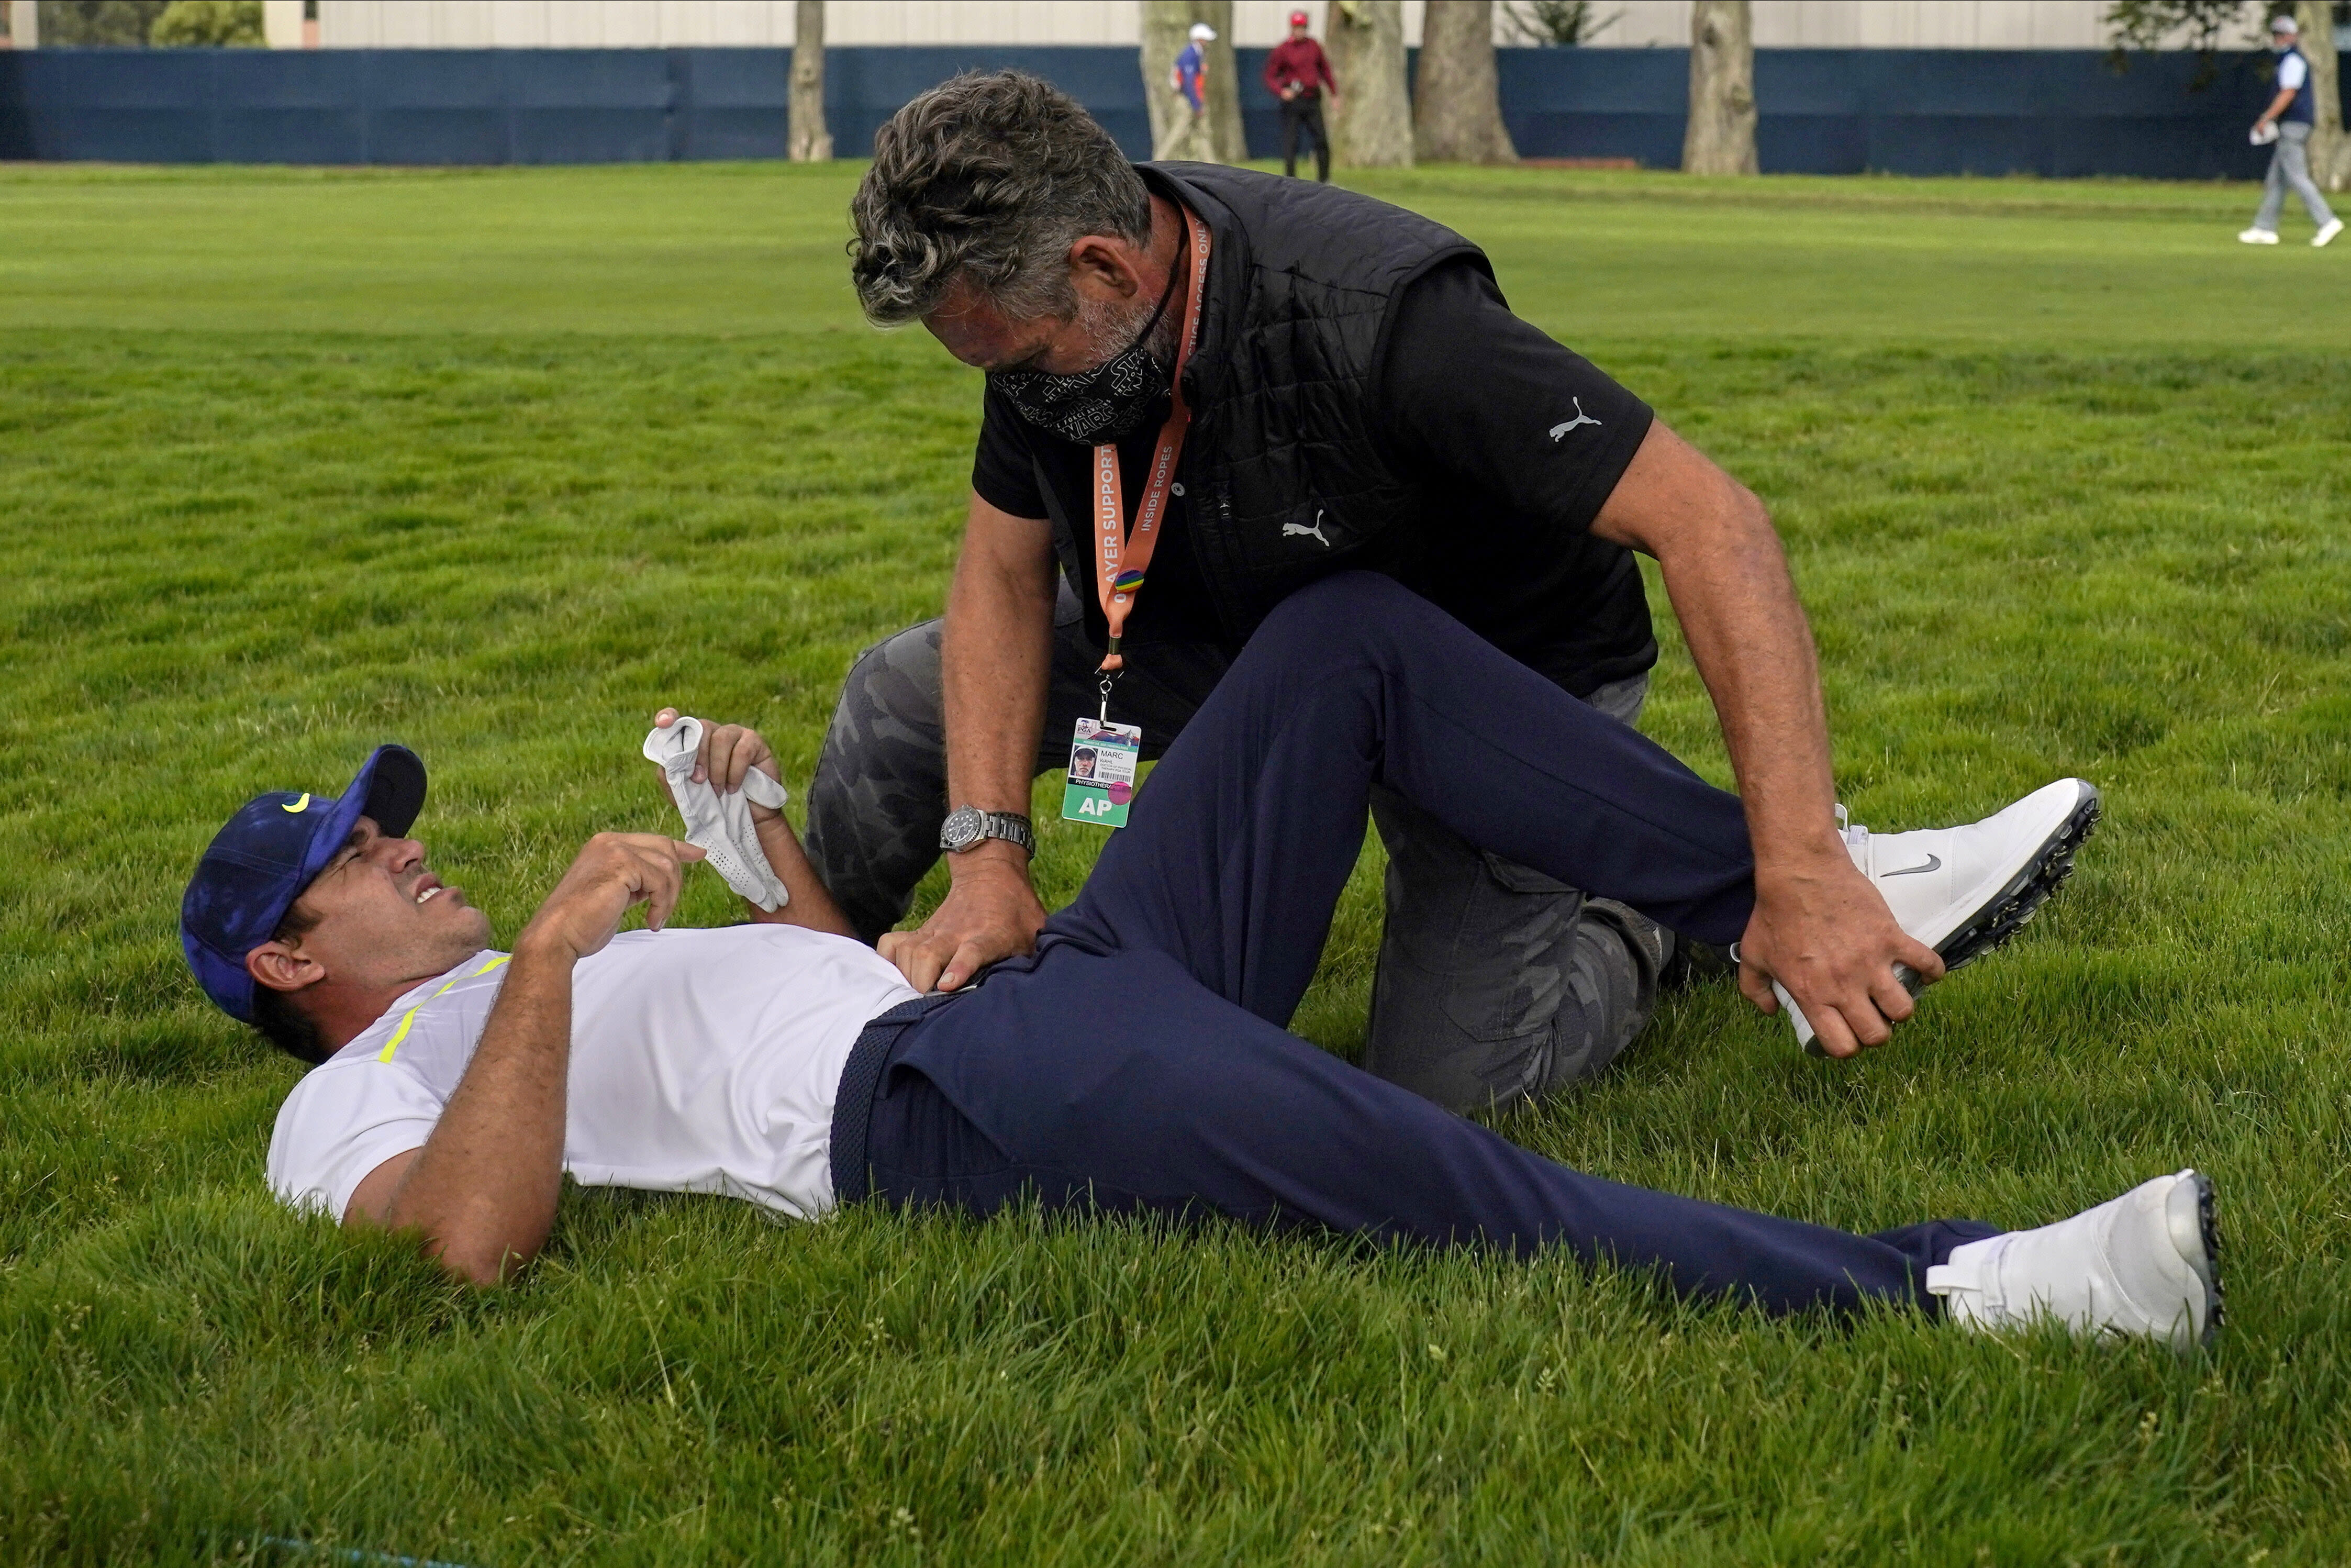 File-This Aug. 7, 2020, file photo shows Brooks Koepka getting treated for an injury on the 12th hole during the second round of the PGA Championship golf tournament at TPC Harding Park Friday, Aug. 7, 2020, in San Francisco. Koepka was out two months with a hip injury and returns this week at the CJ Cup at Shadow Creek in Las Vegas. (AP Photo/Jeff Chiu, File)